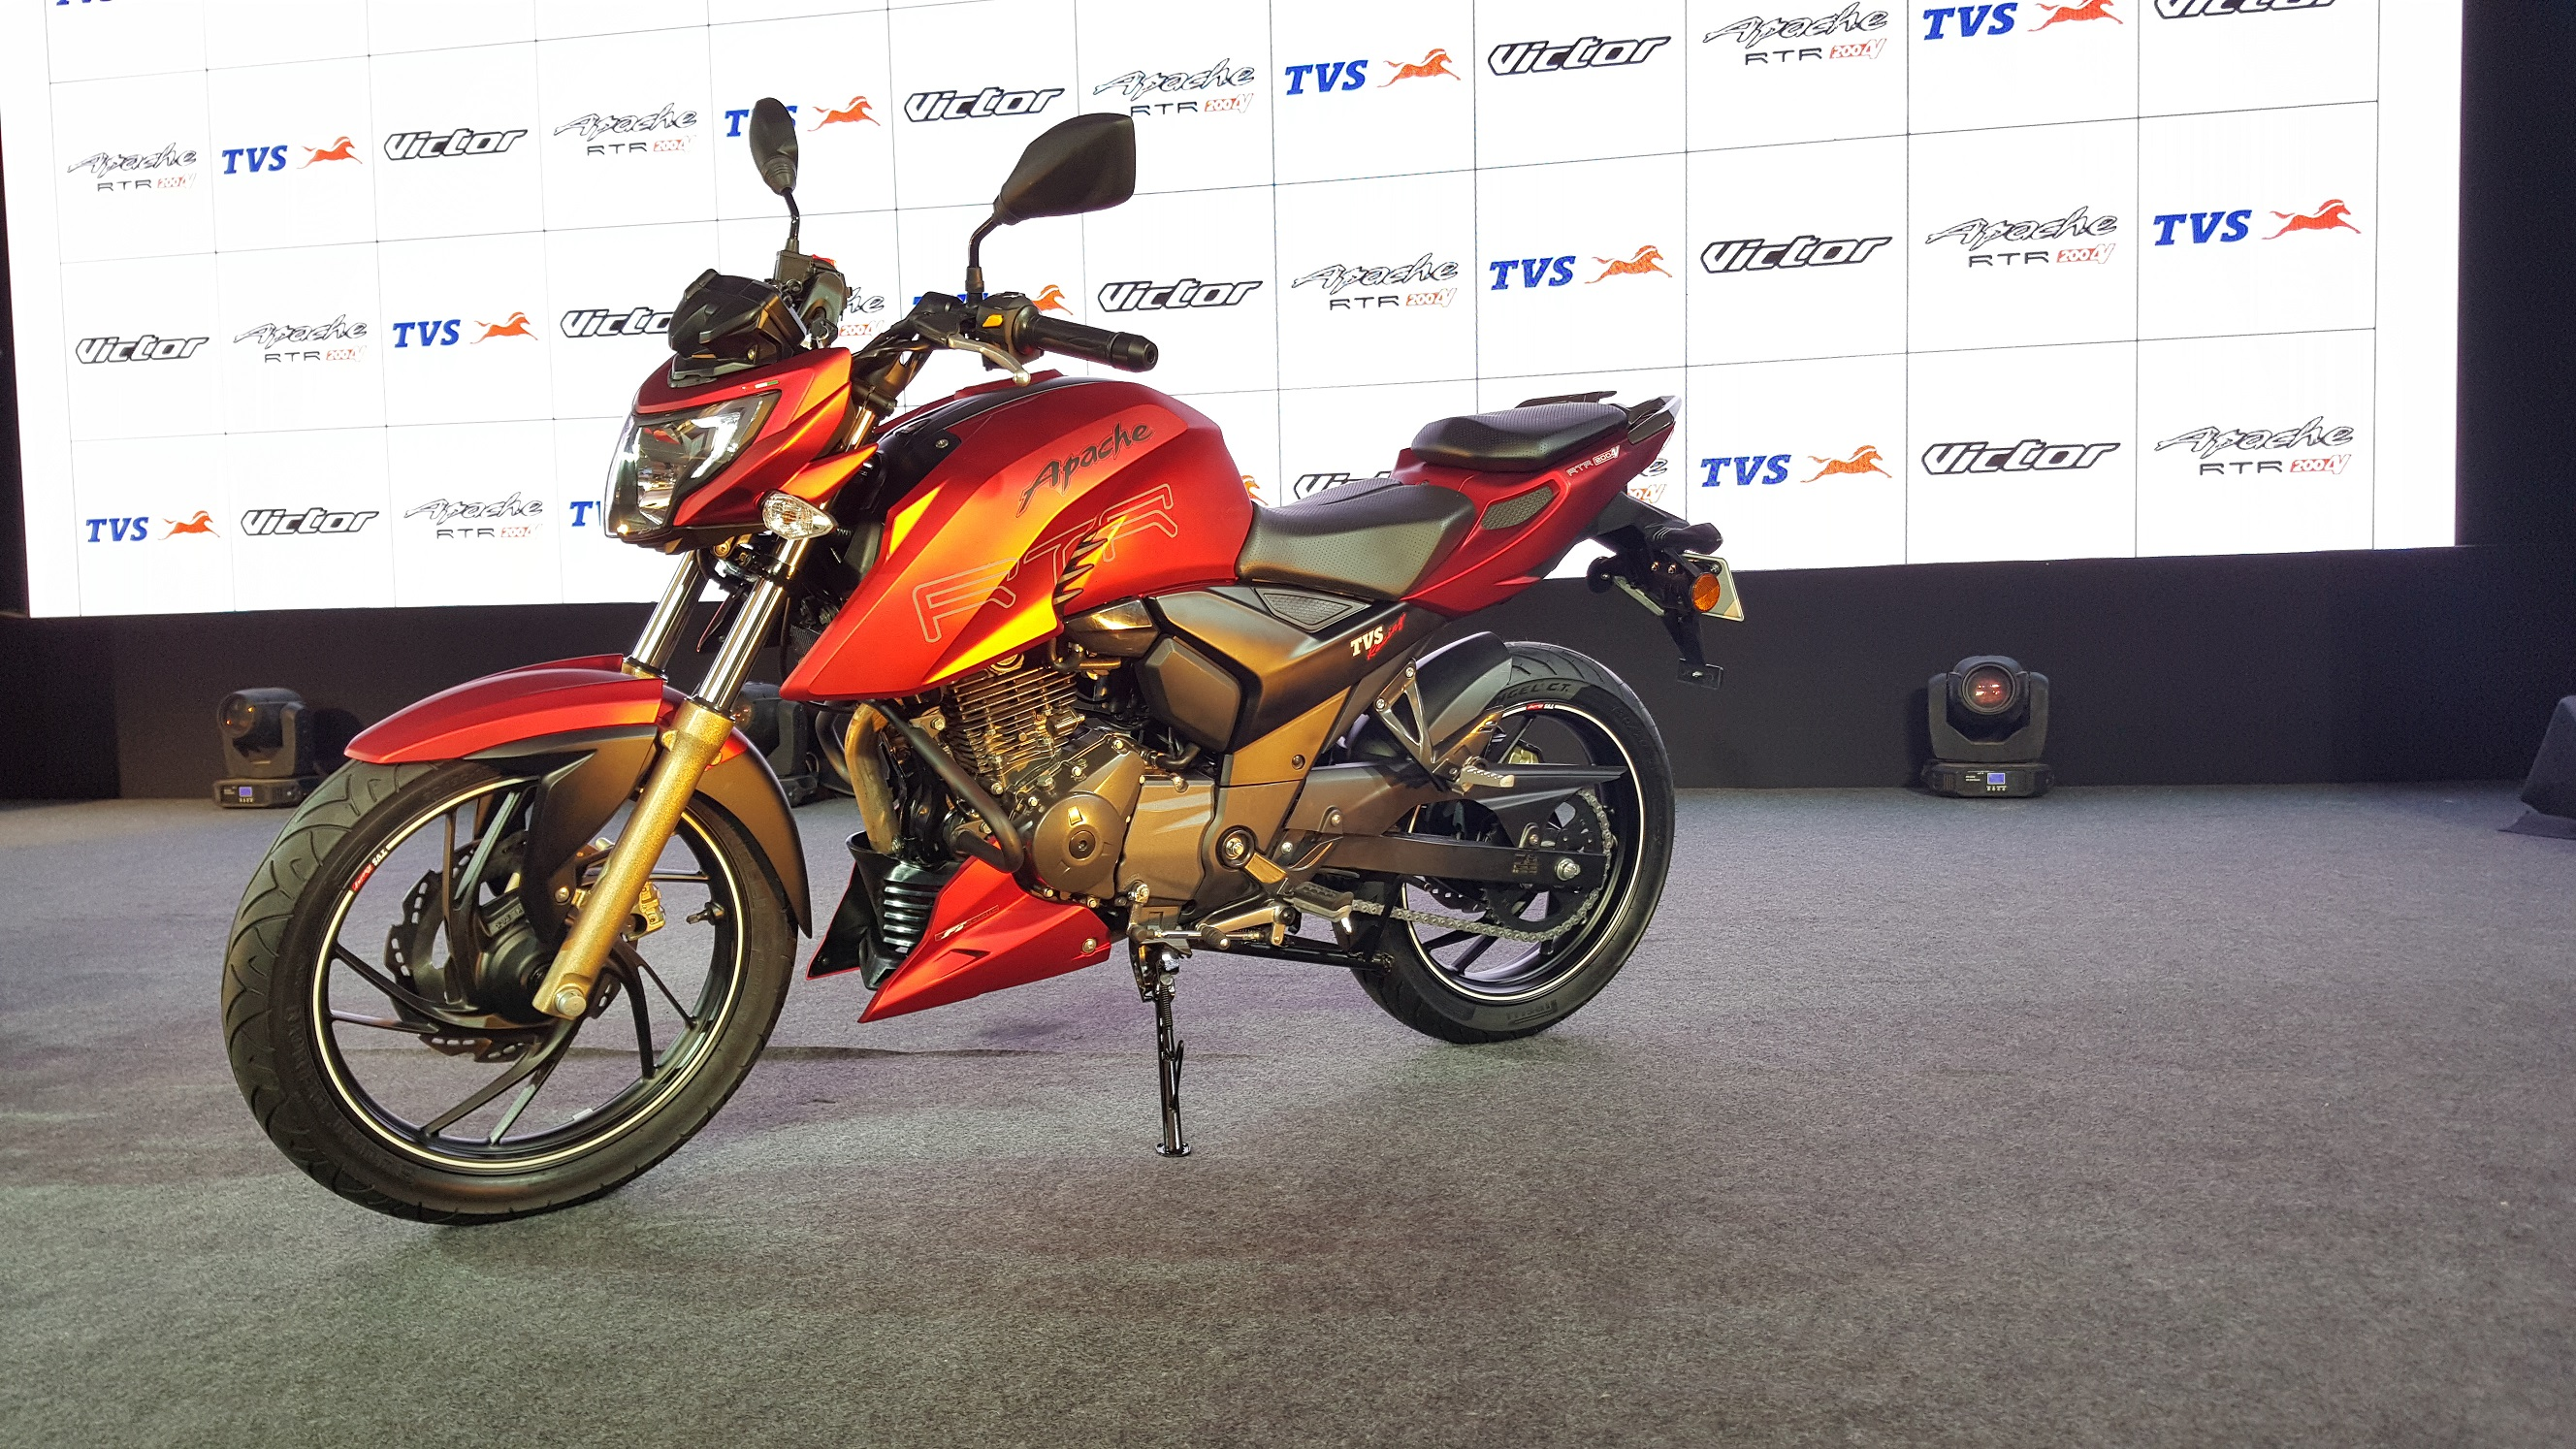 TVS Motor rolls out new Apache 200 & Victor - Auto